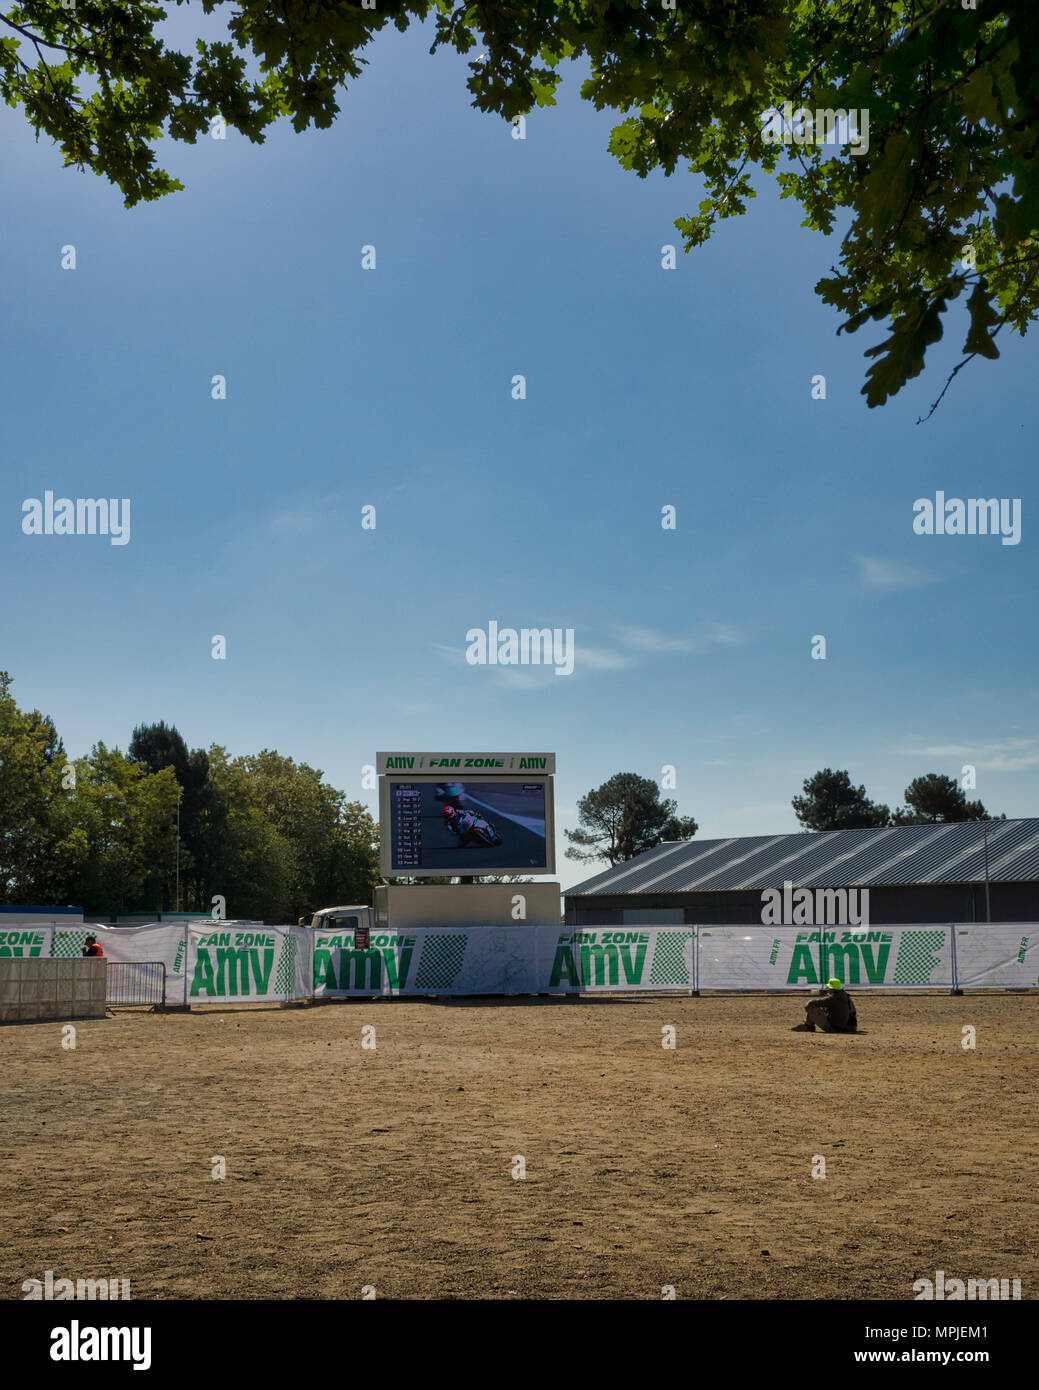 19-20th May 2018. Le Mans, France.  Behind the scenes at the MotoGP.  A young couple sit on the dirt ground to watch the practice sessions on one of the big screens.  The photograph is framed  with the leaves of an overhanging Oak tree. - Stock Image